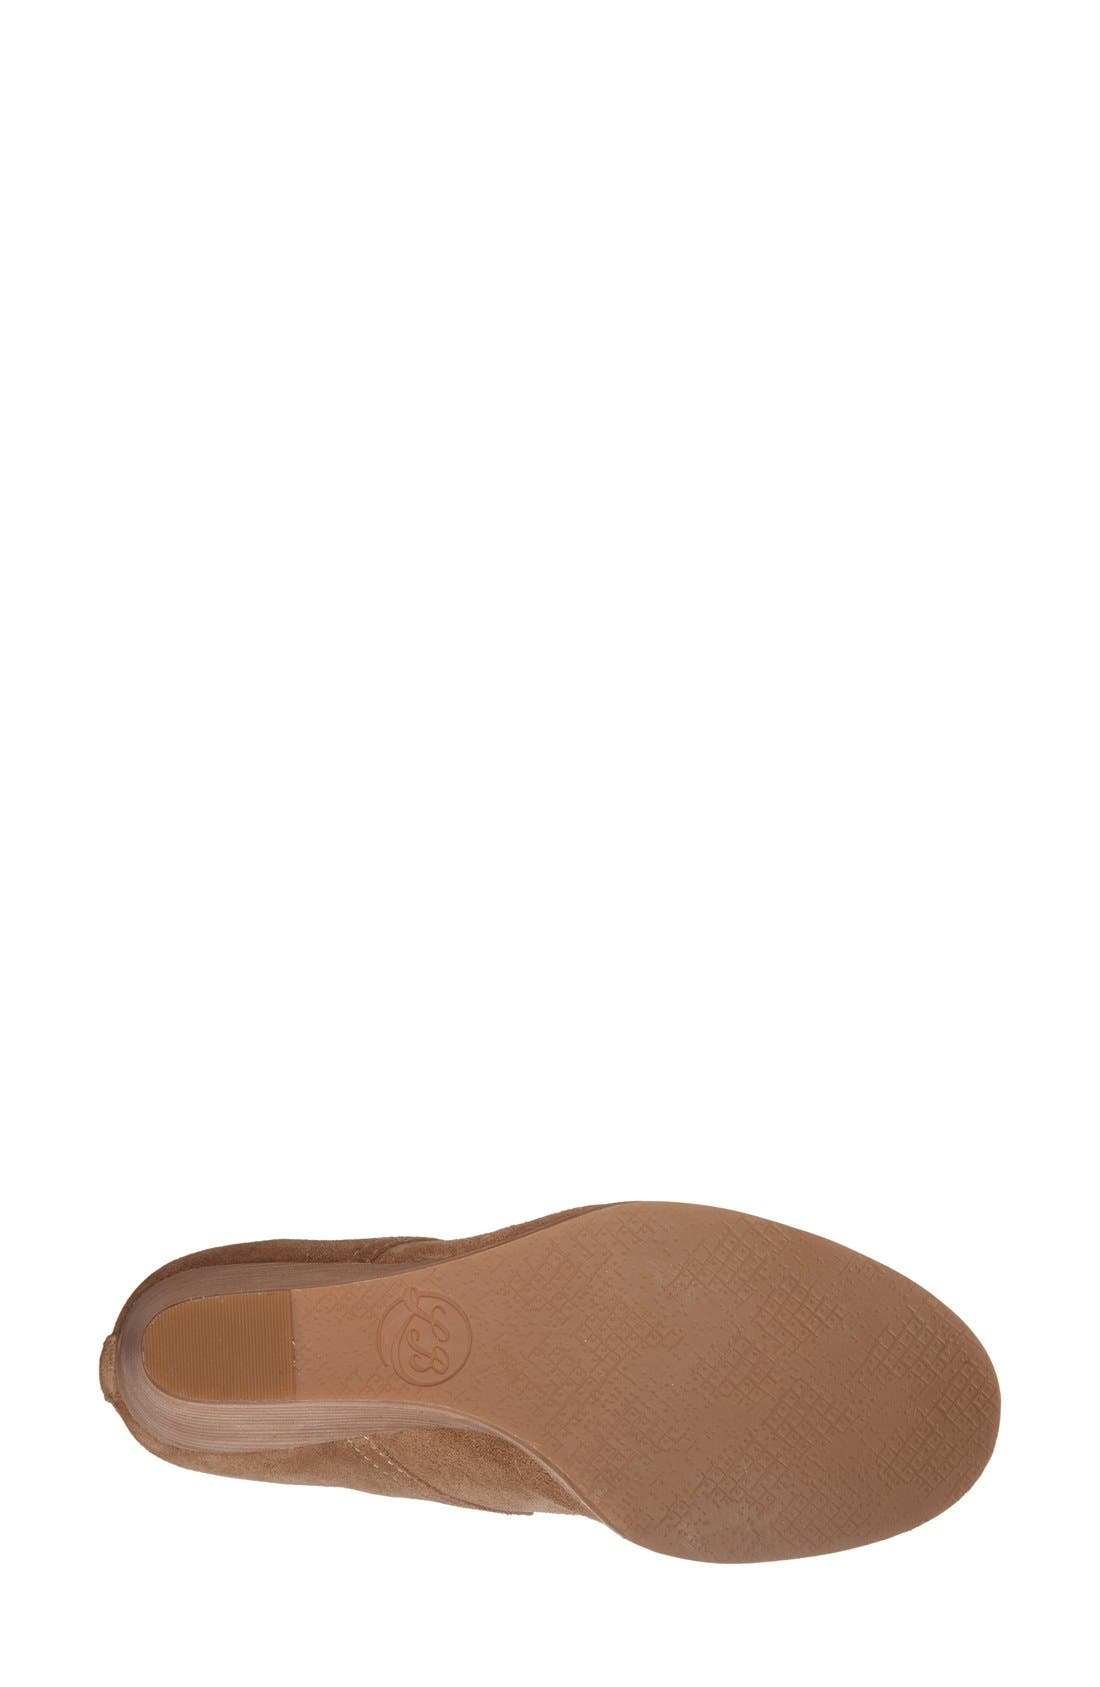 'Yoniana' Wedge Bootie,                             Alternate thumbnail 18, color,